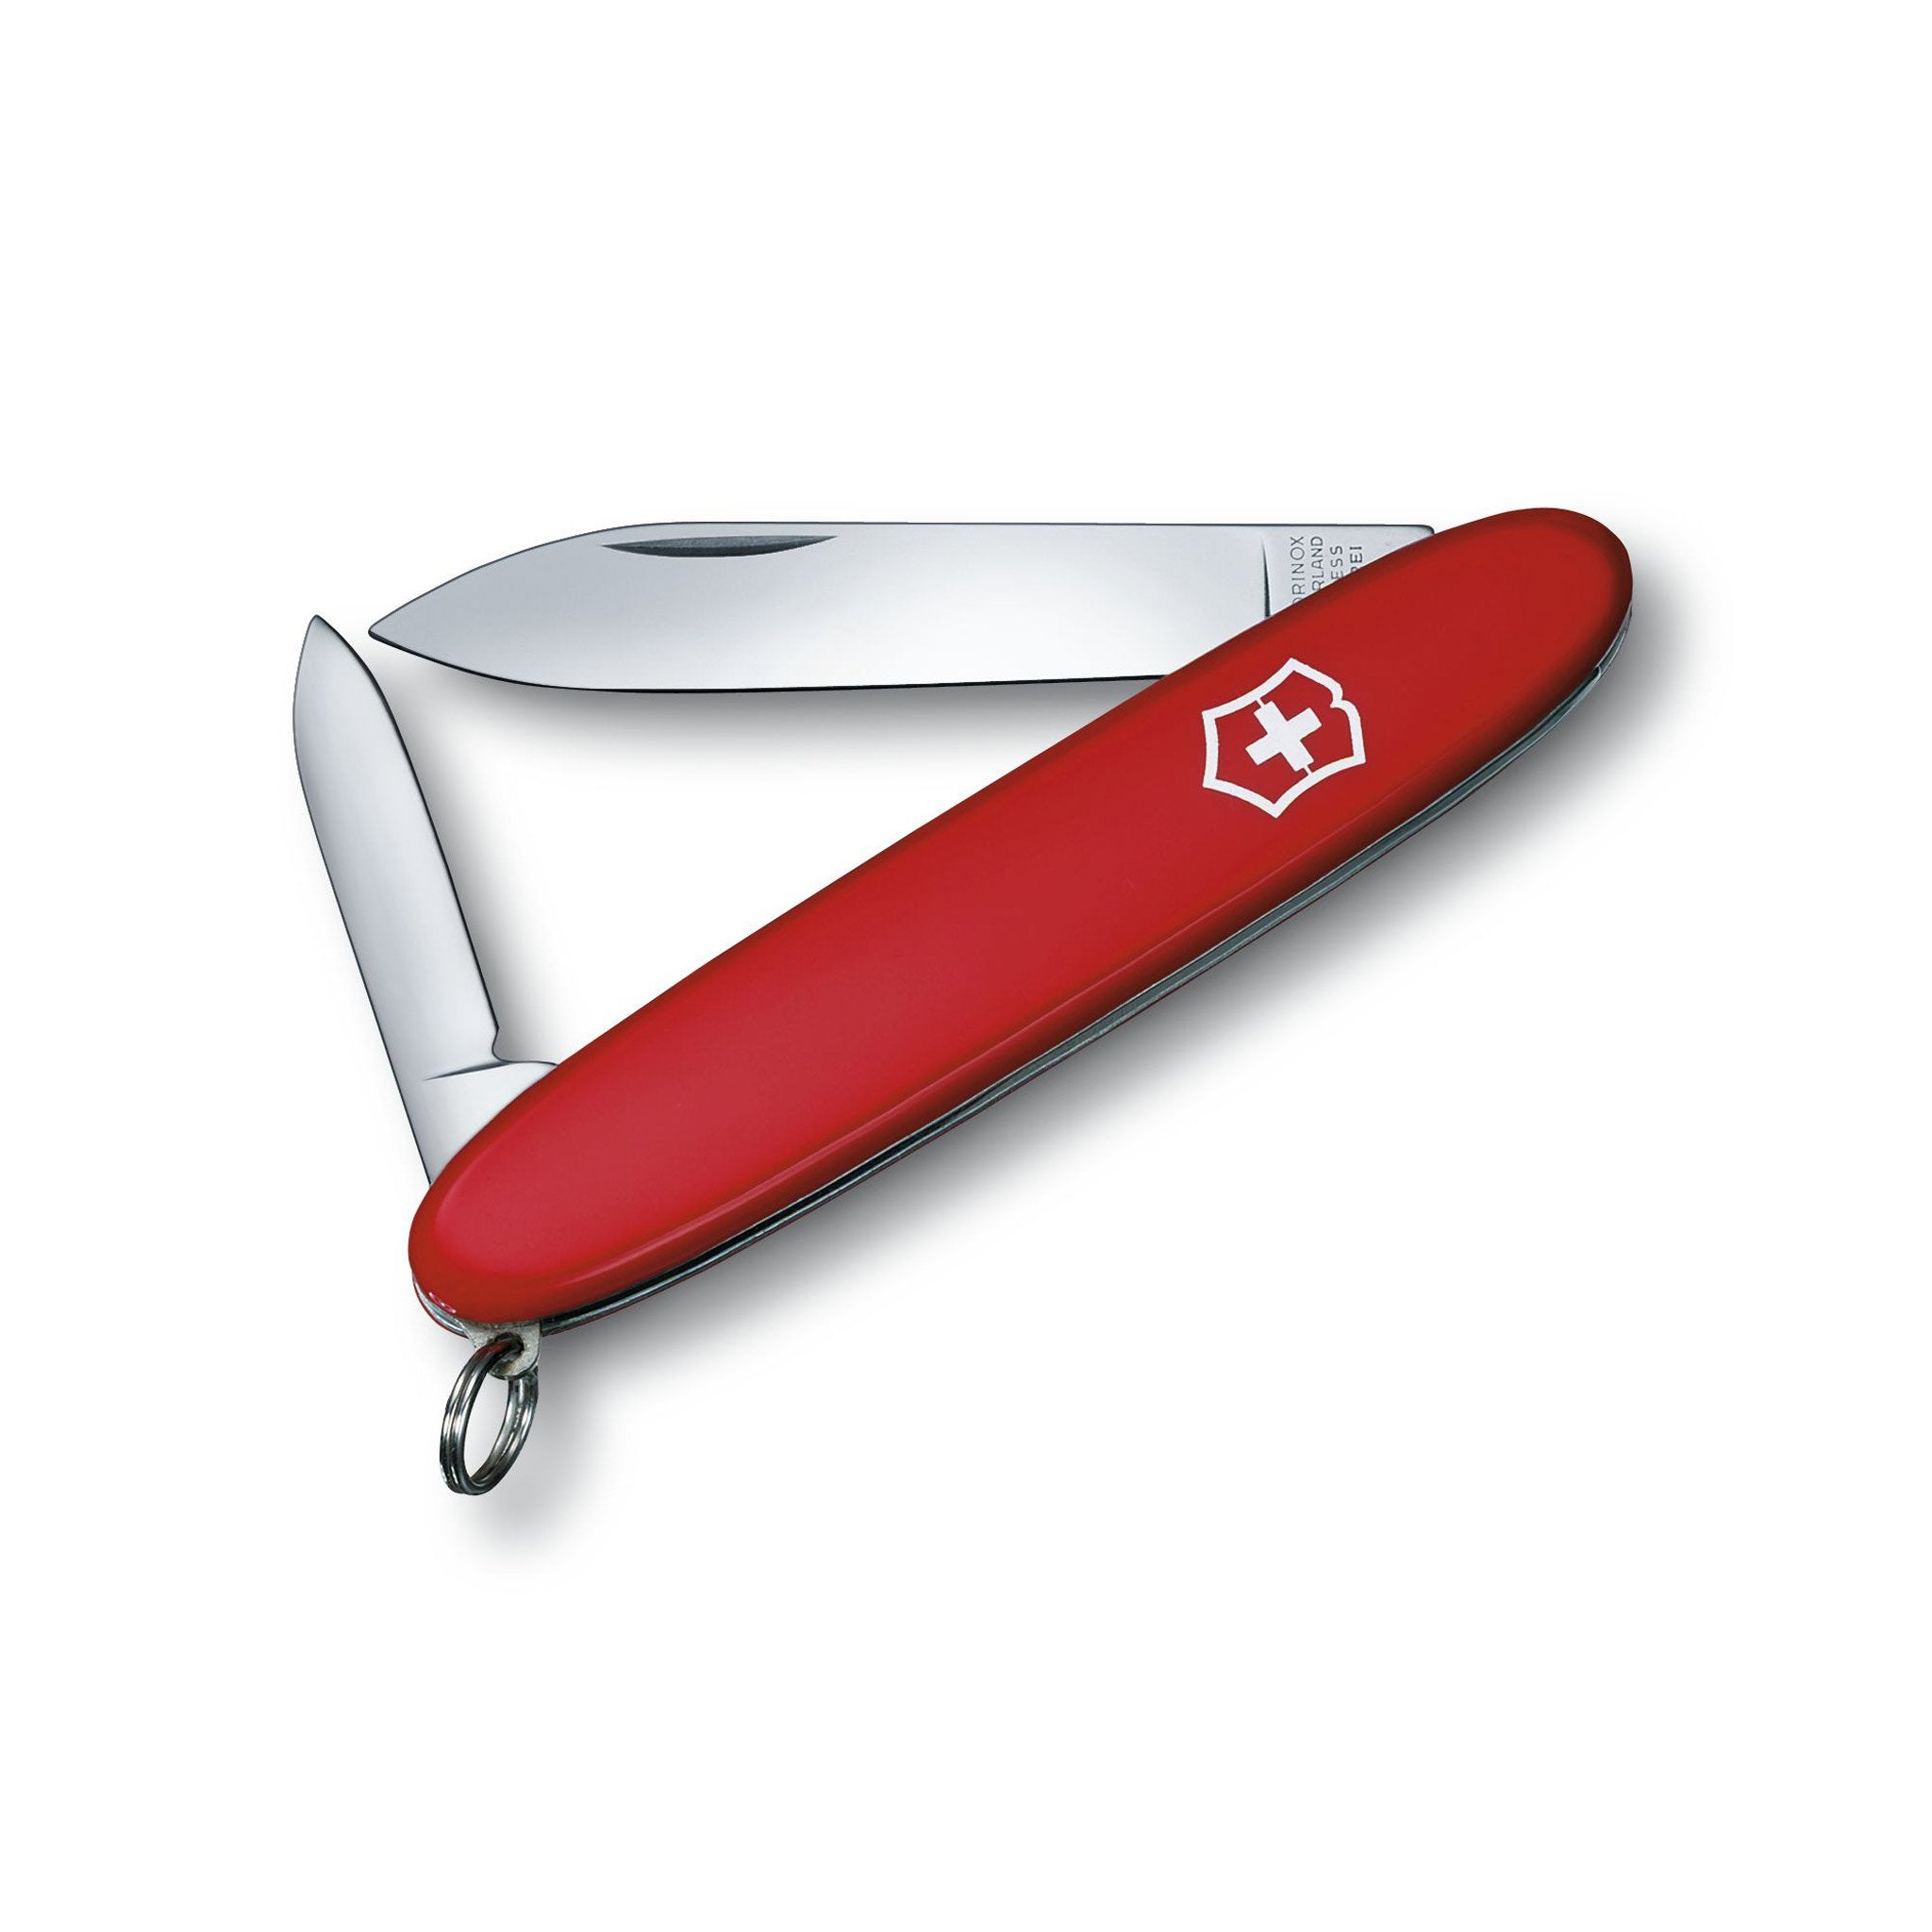 Excelsior Victorinox Swiss Army Knife Red - Arthur Beale